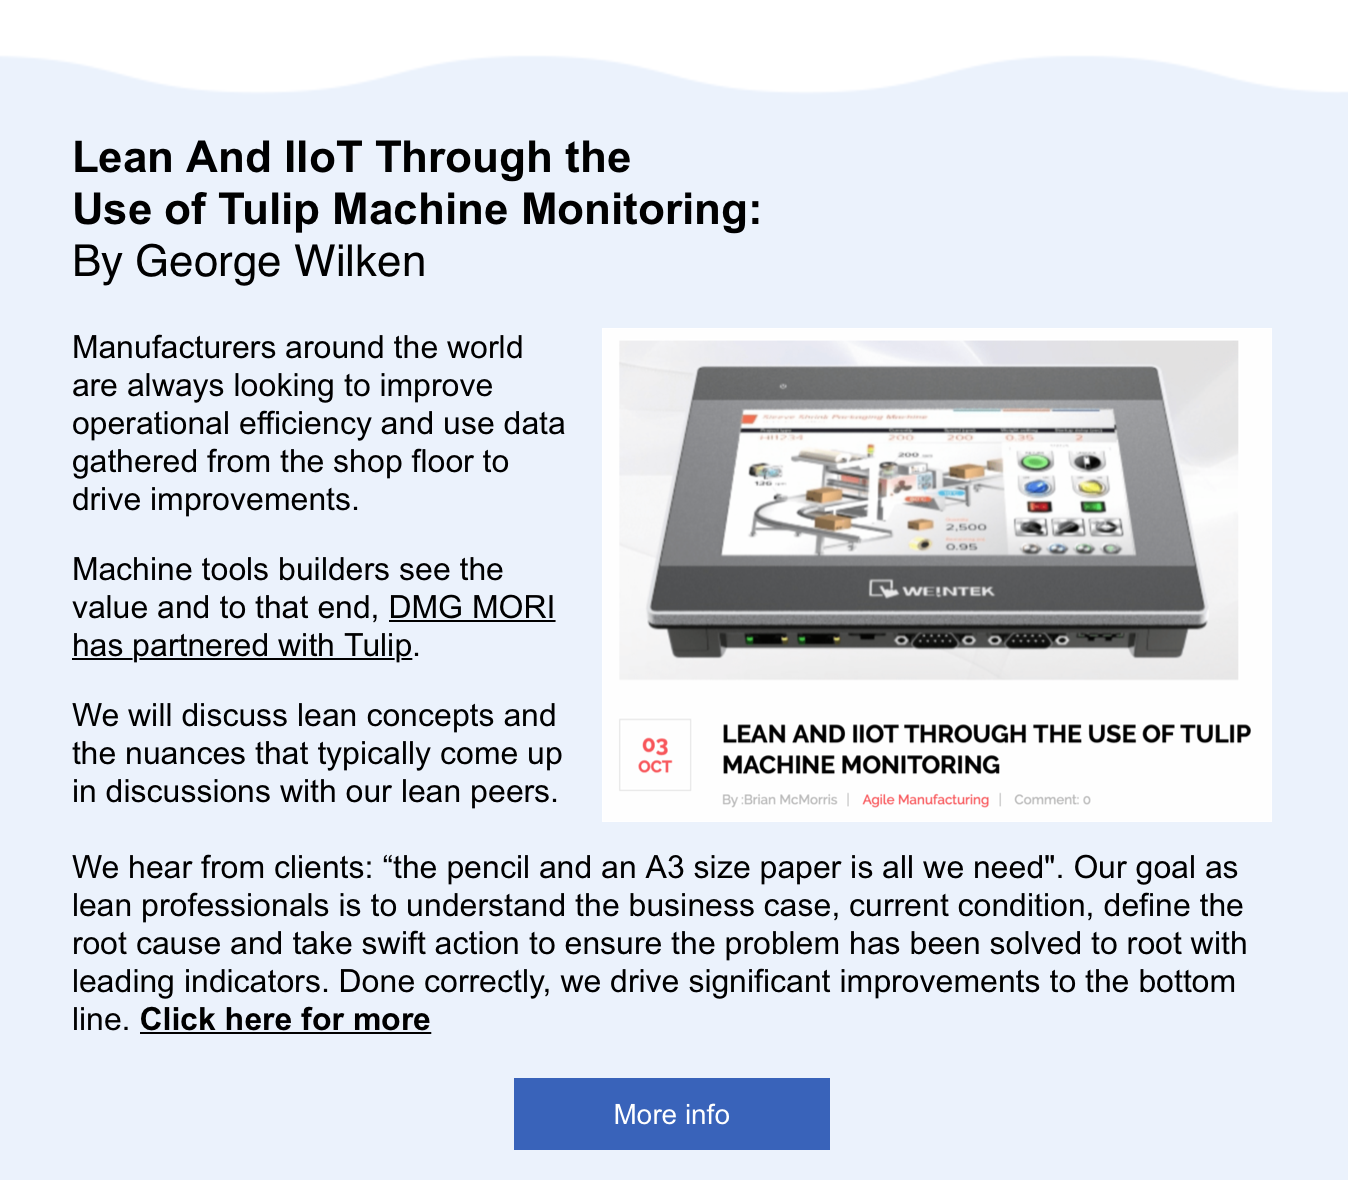 Lean and IIoT with Tulip